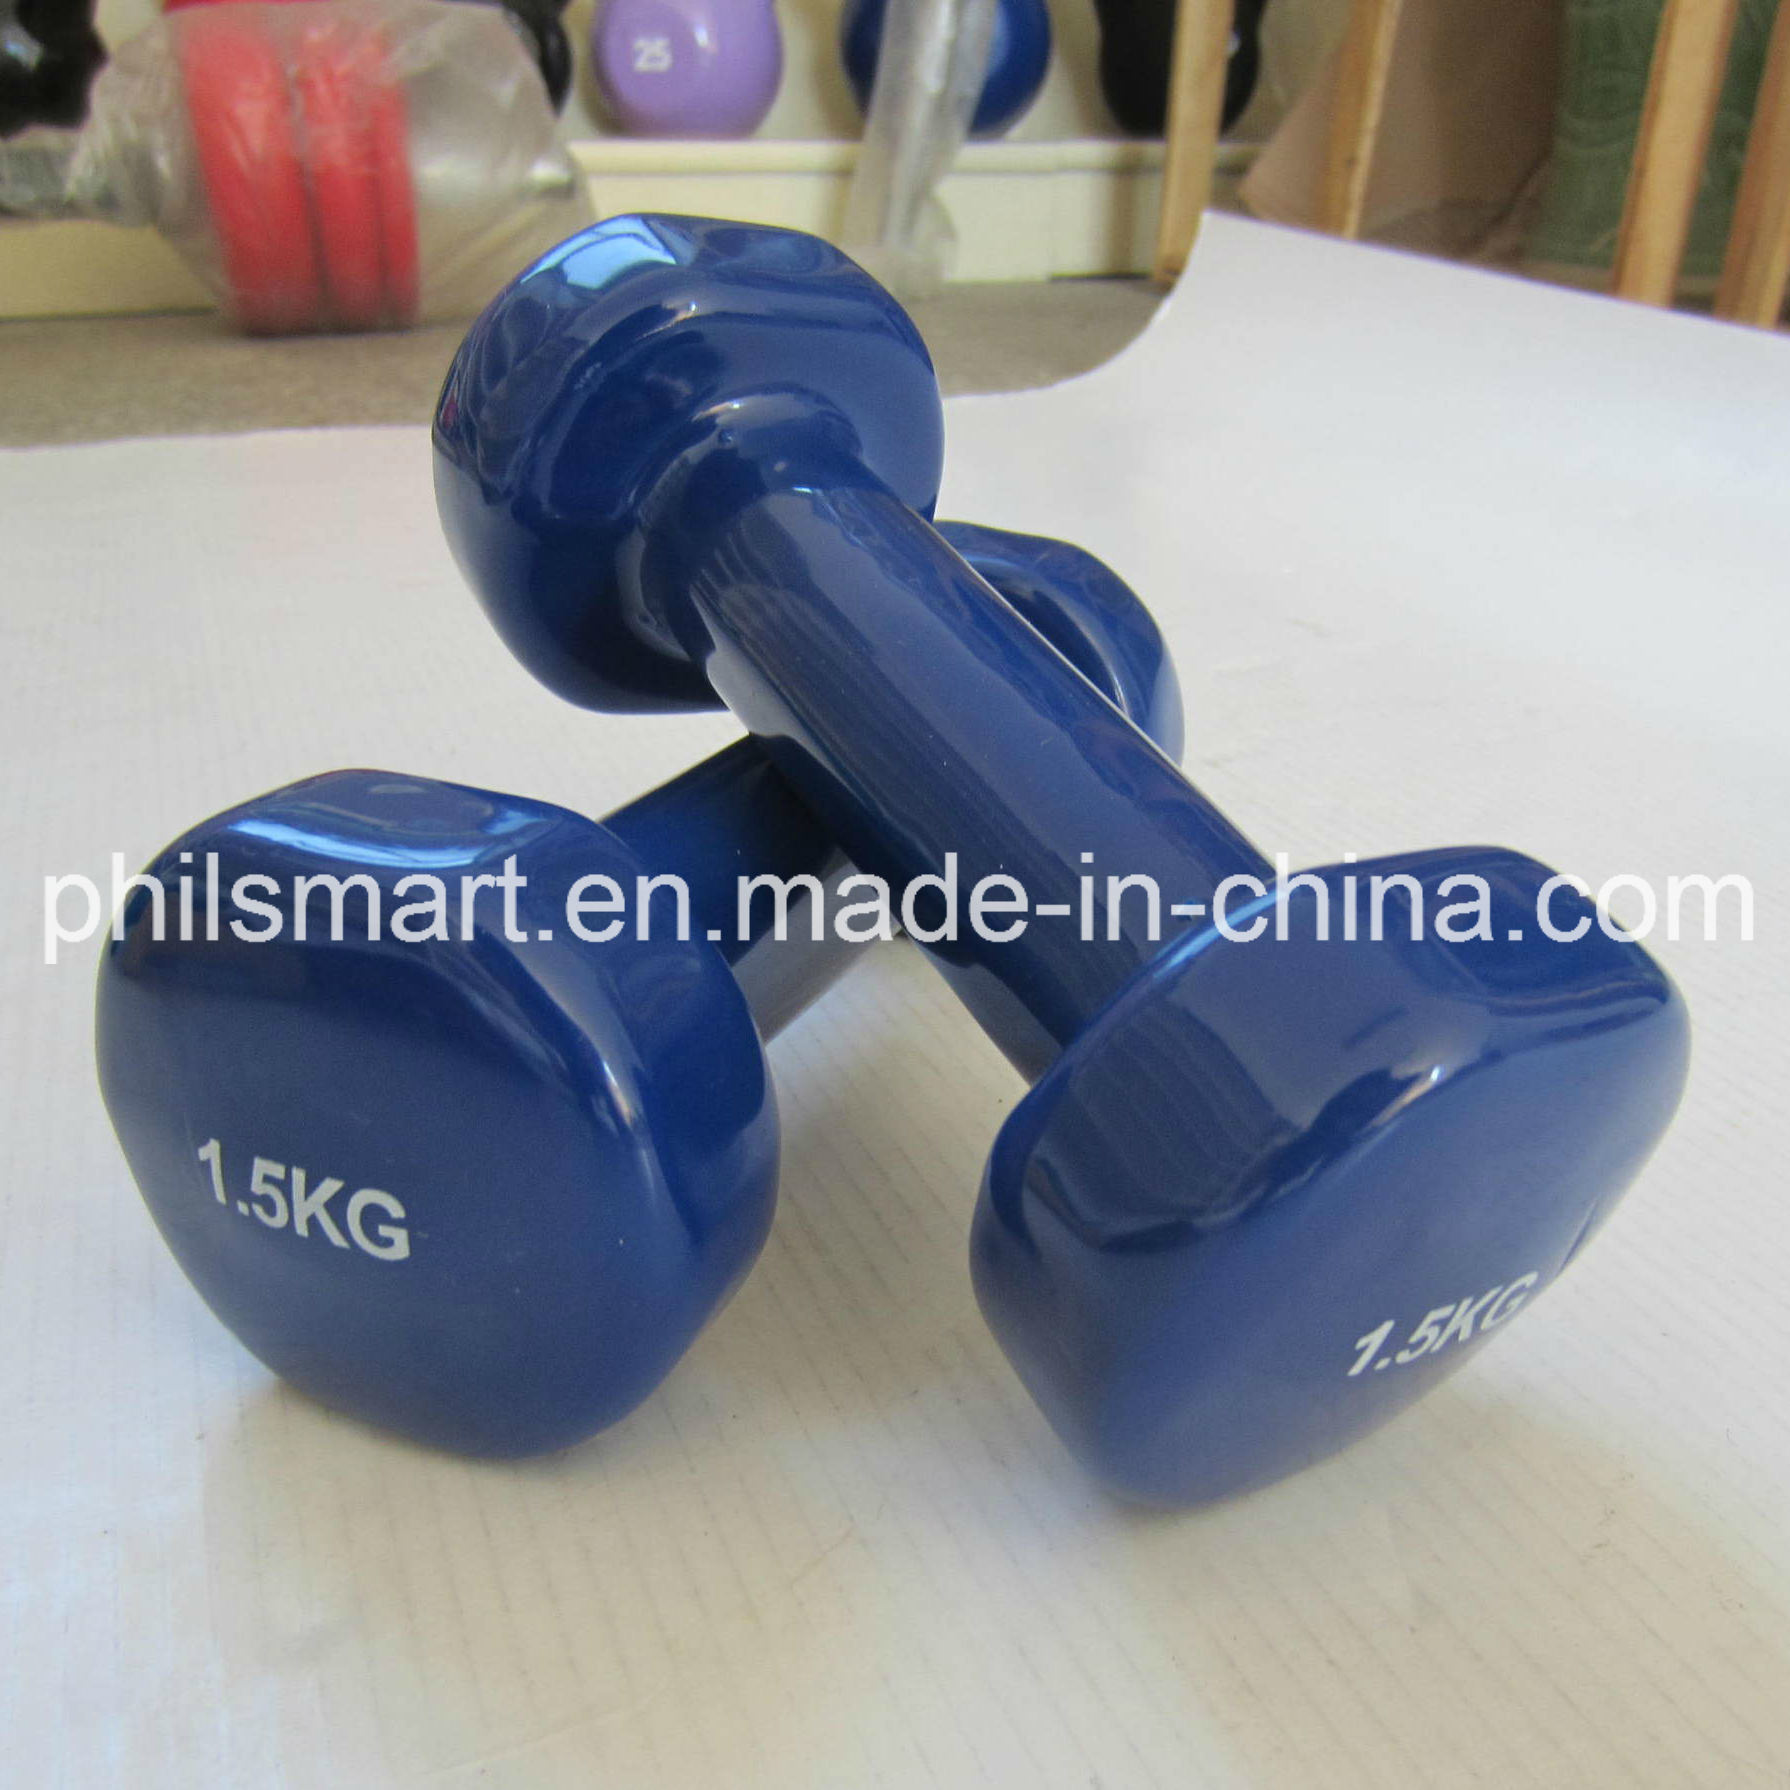 Vinyl Dipping Coated Exercise Dumbbells